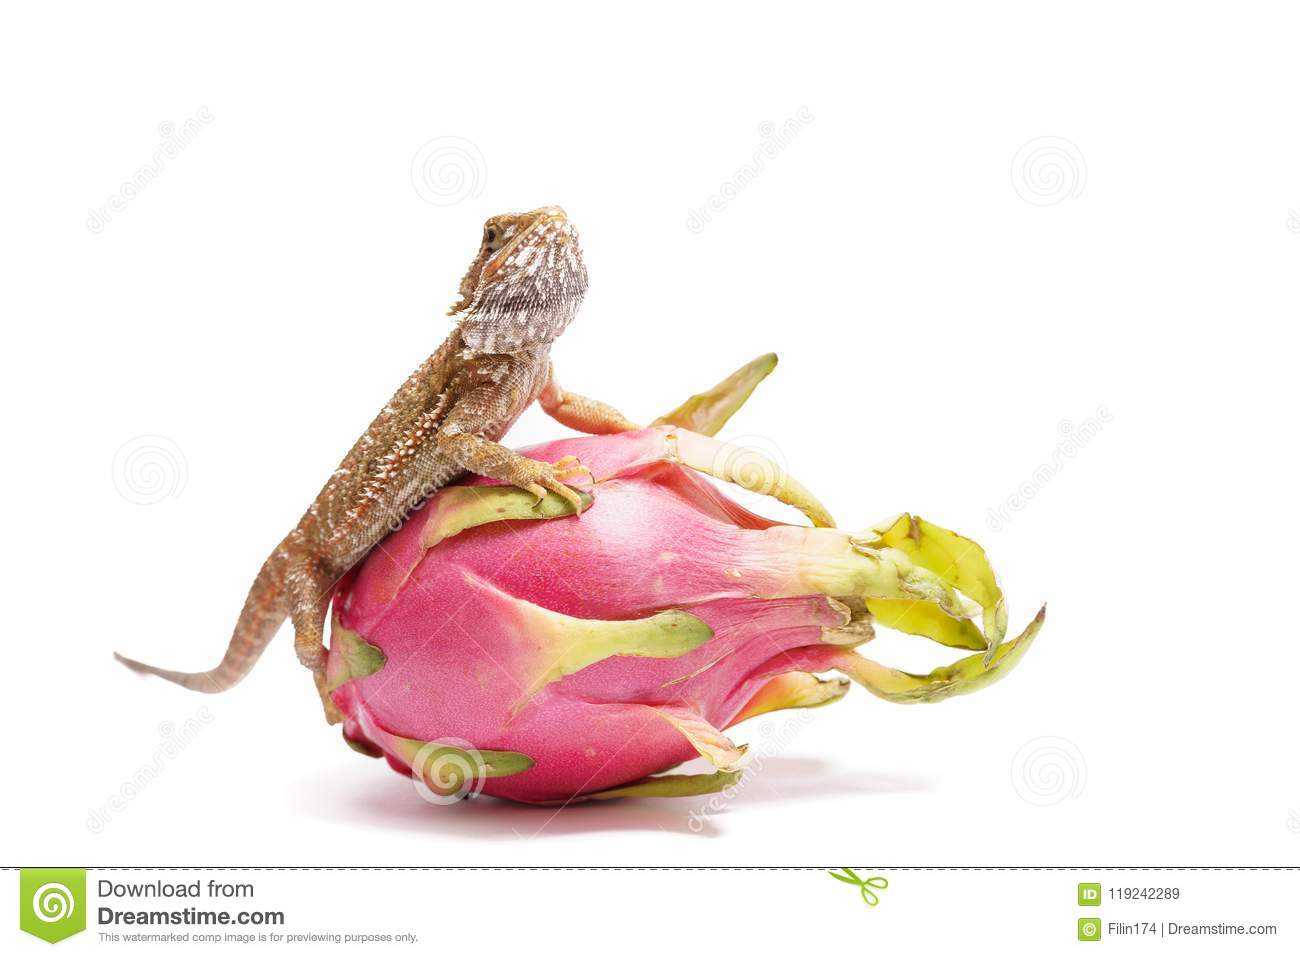 Agama sits on the fruit of pityahya (dragon fruit) as a dragon